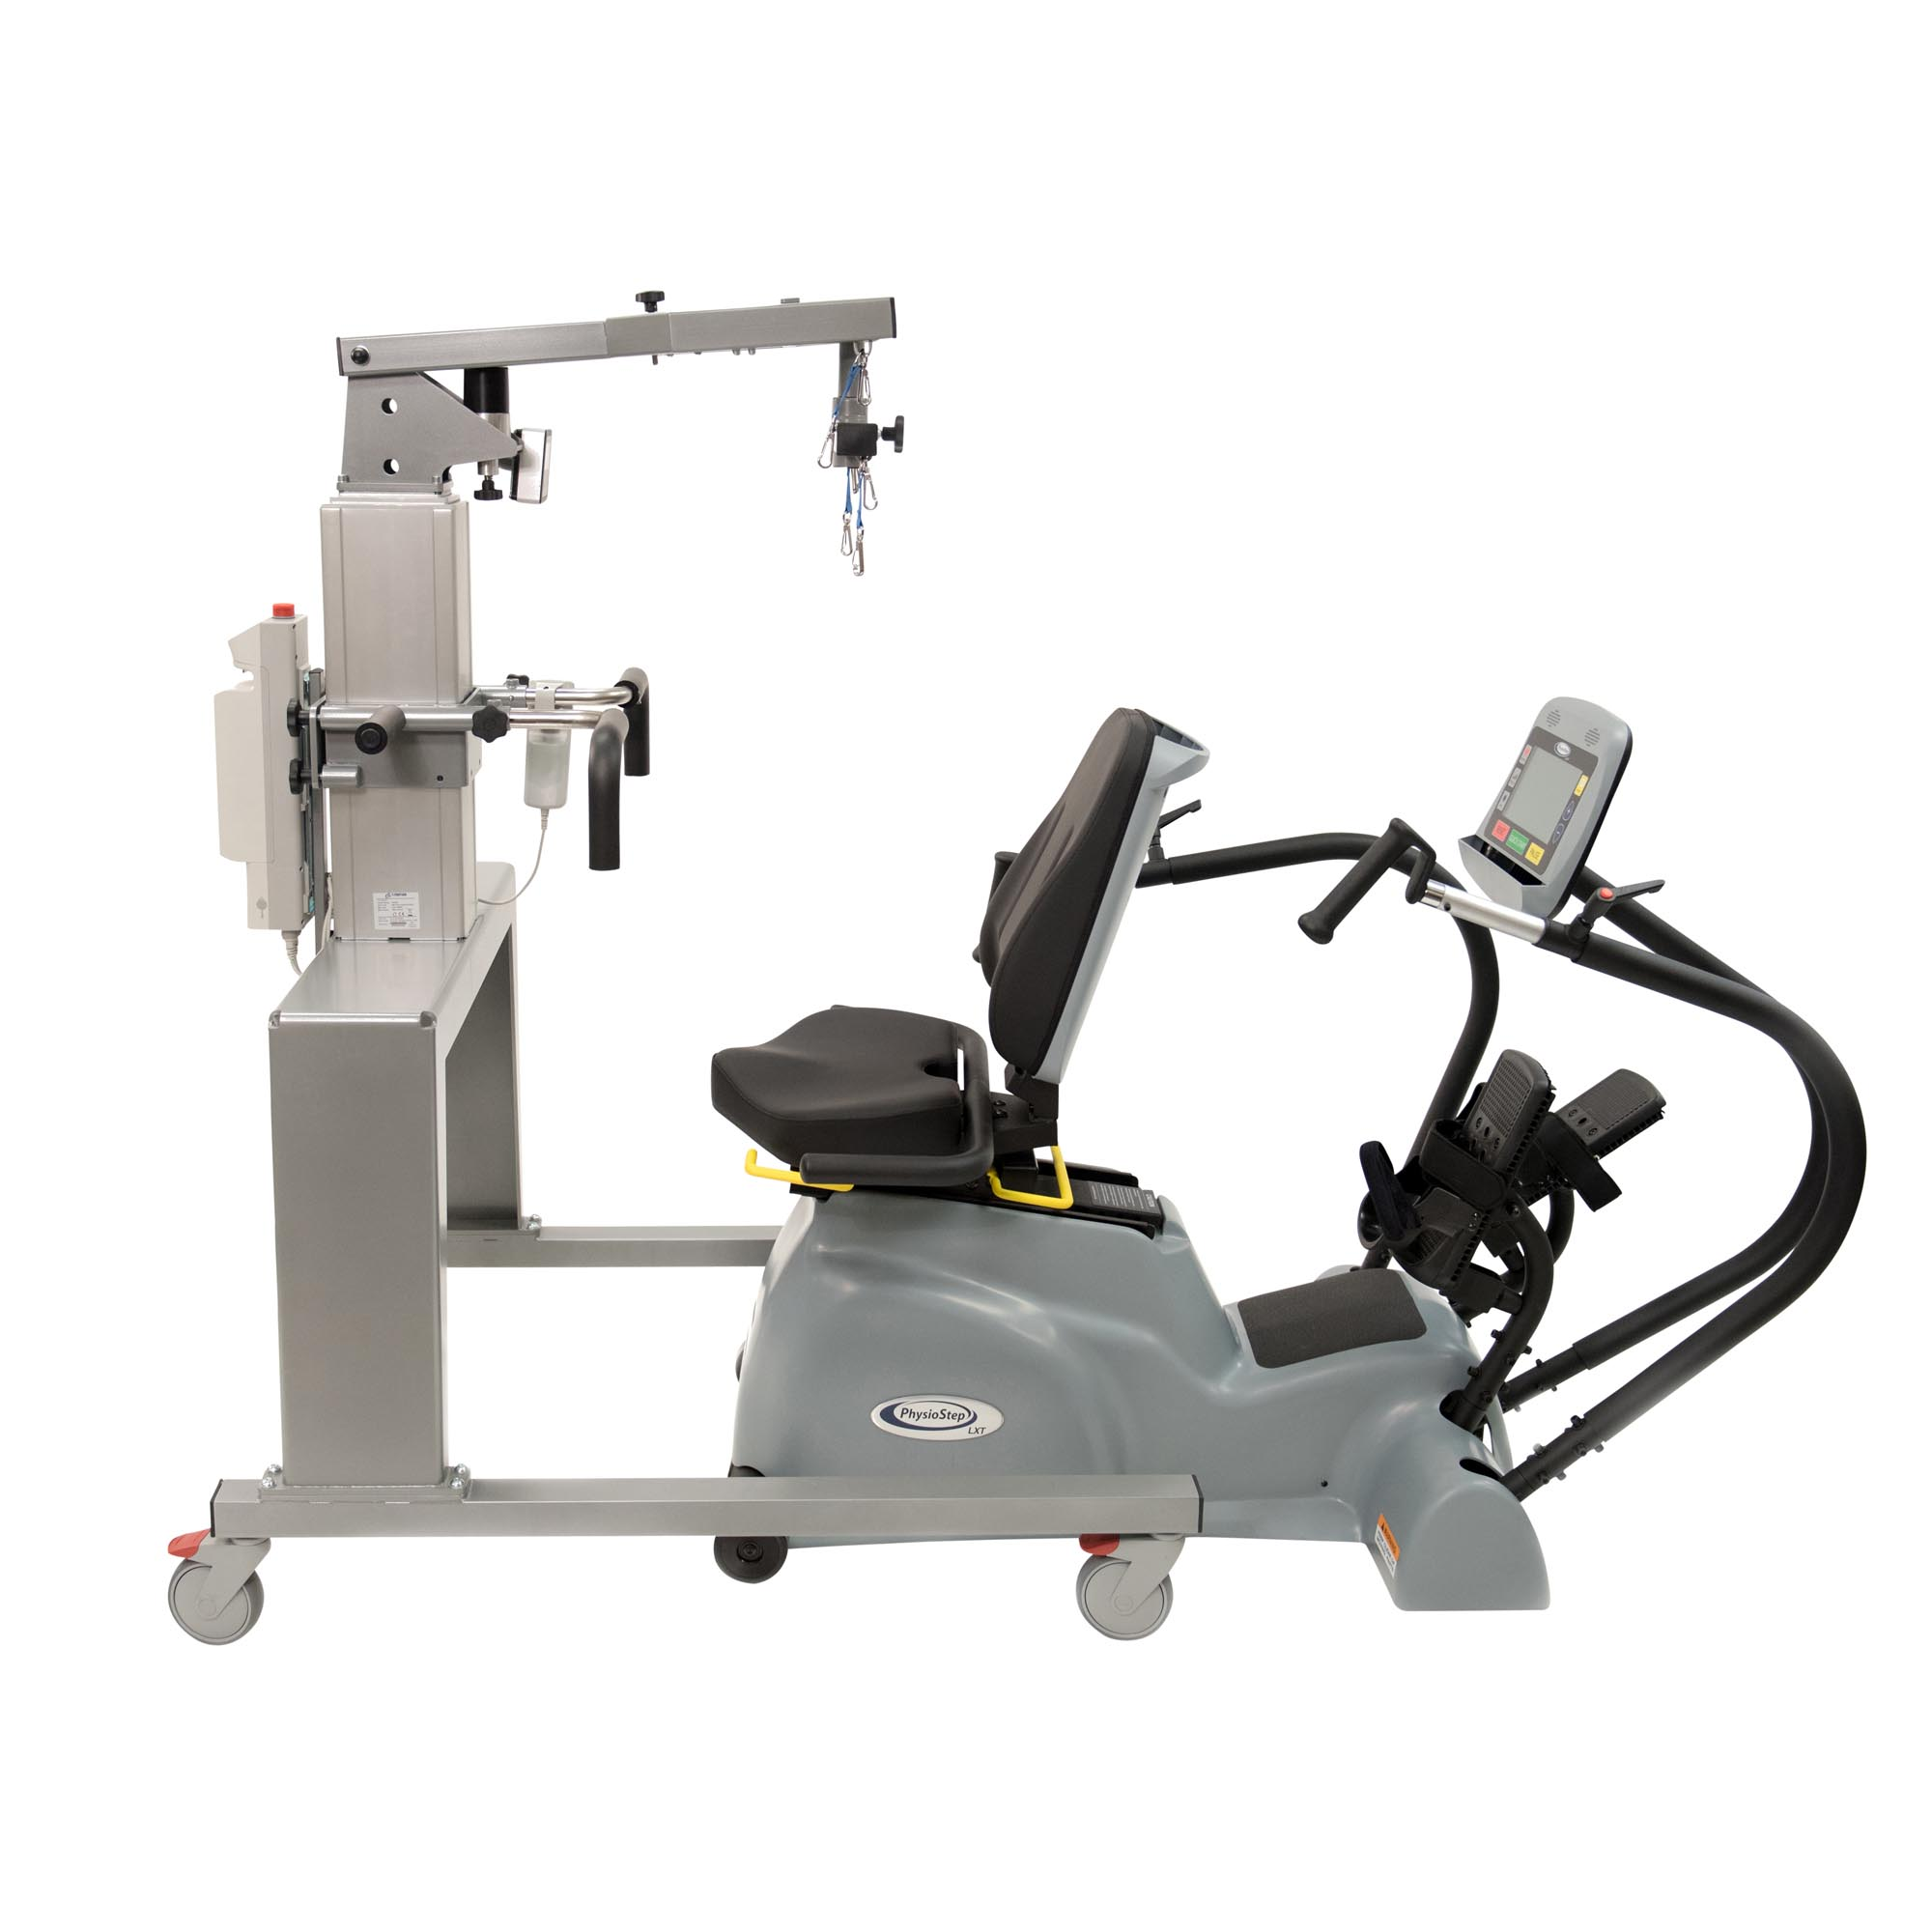 PhysioGait PhysioStep LXT